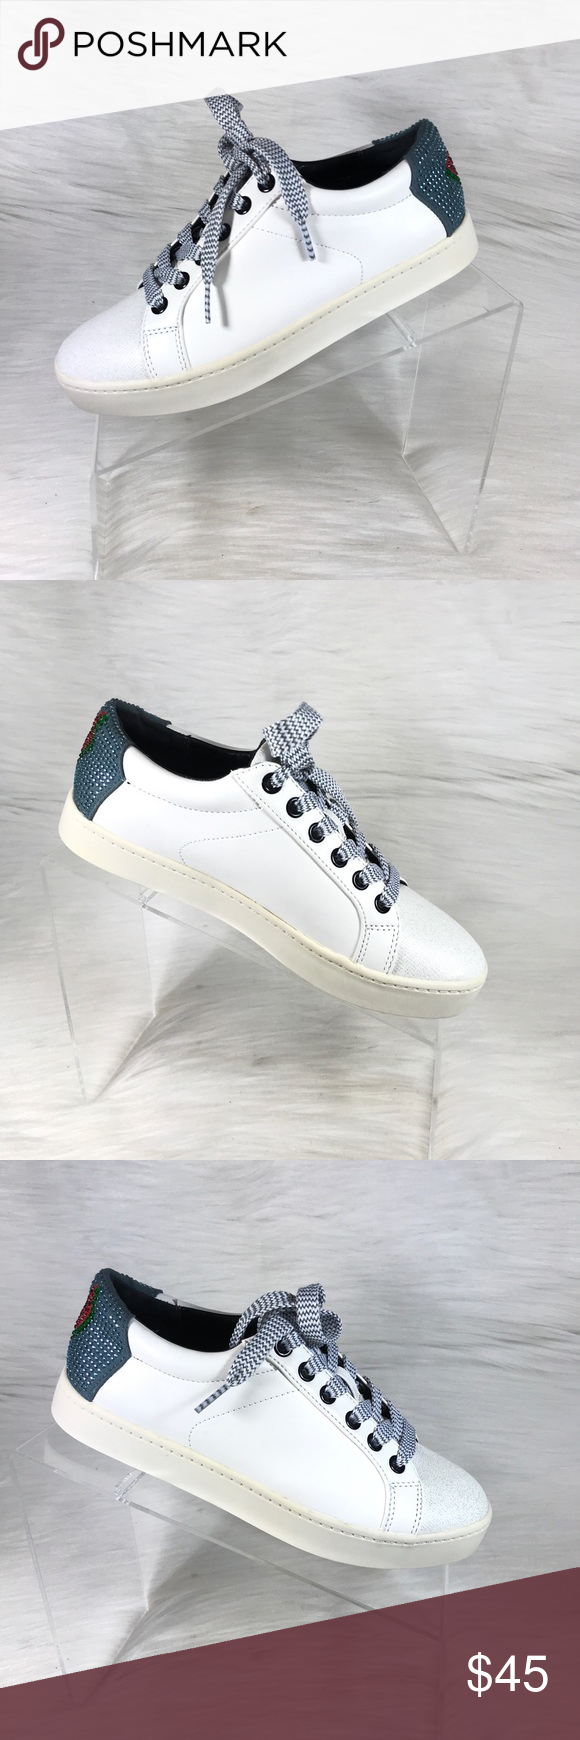 e45457654 Circus By Sam Edelman Leather Sneakers Size 6.5 Circus By Sam Edelman  Leather Sneakers White With Watermelon decor Size 6.5. In excellent  condition worn ...